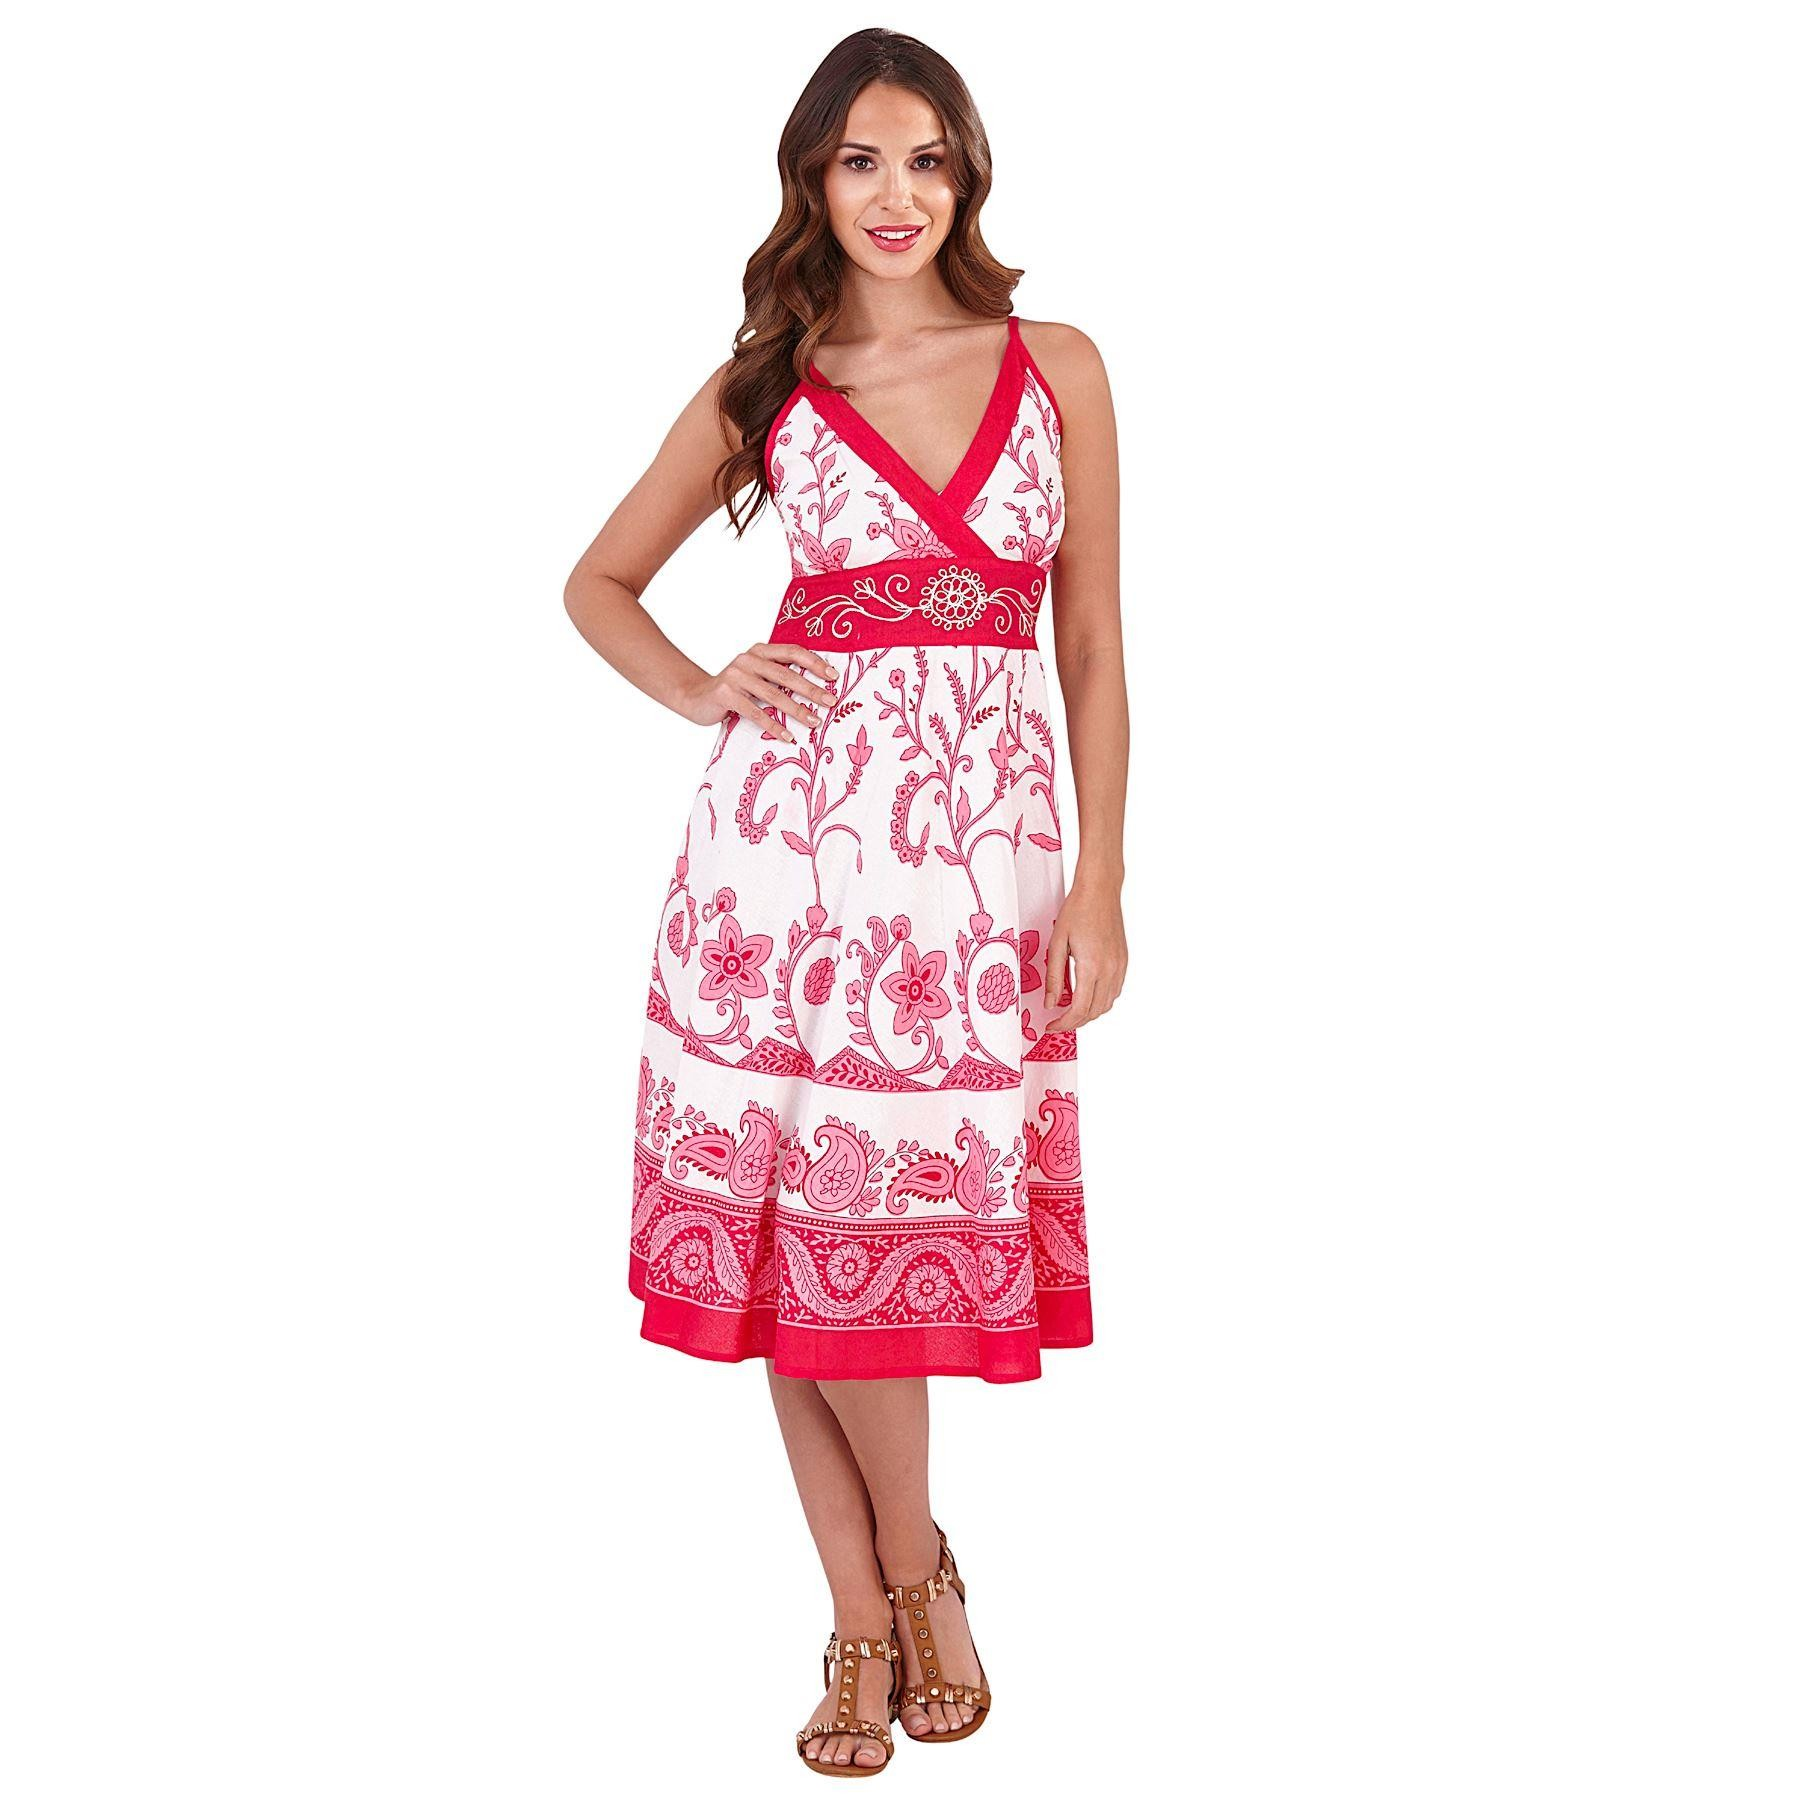 Pistachio Patterned Crossover Dress - Pink